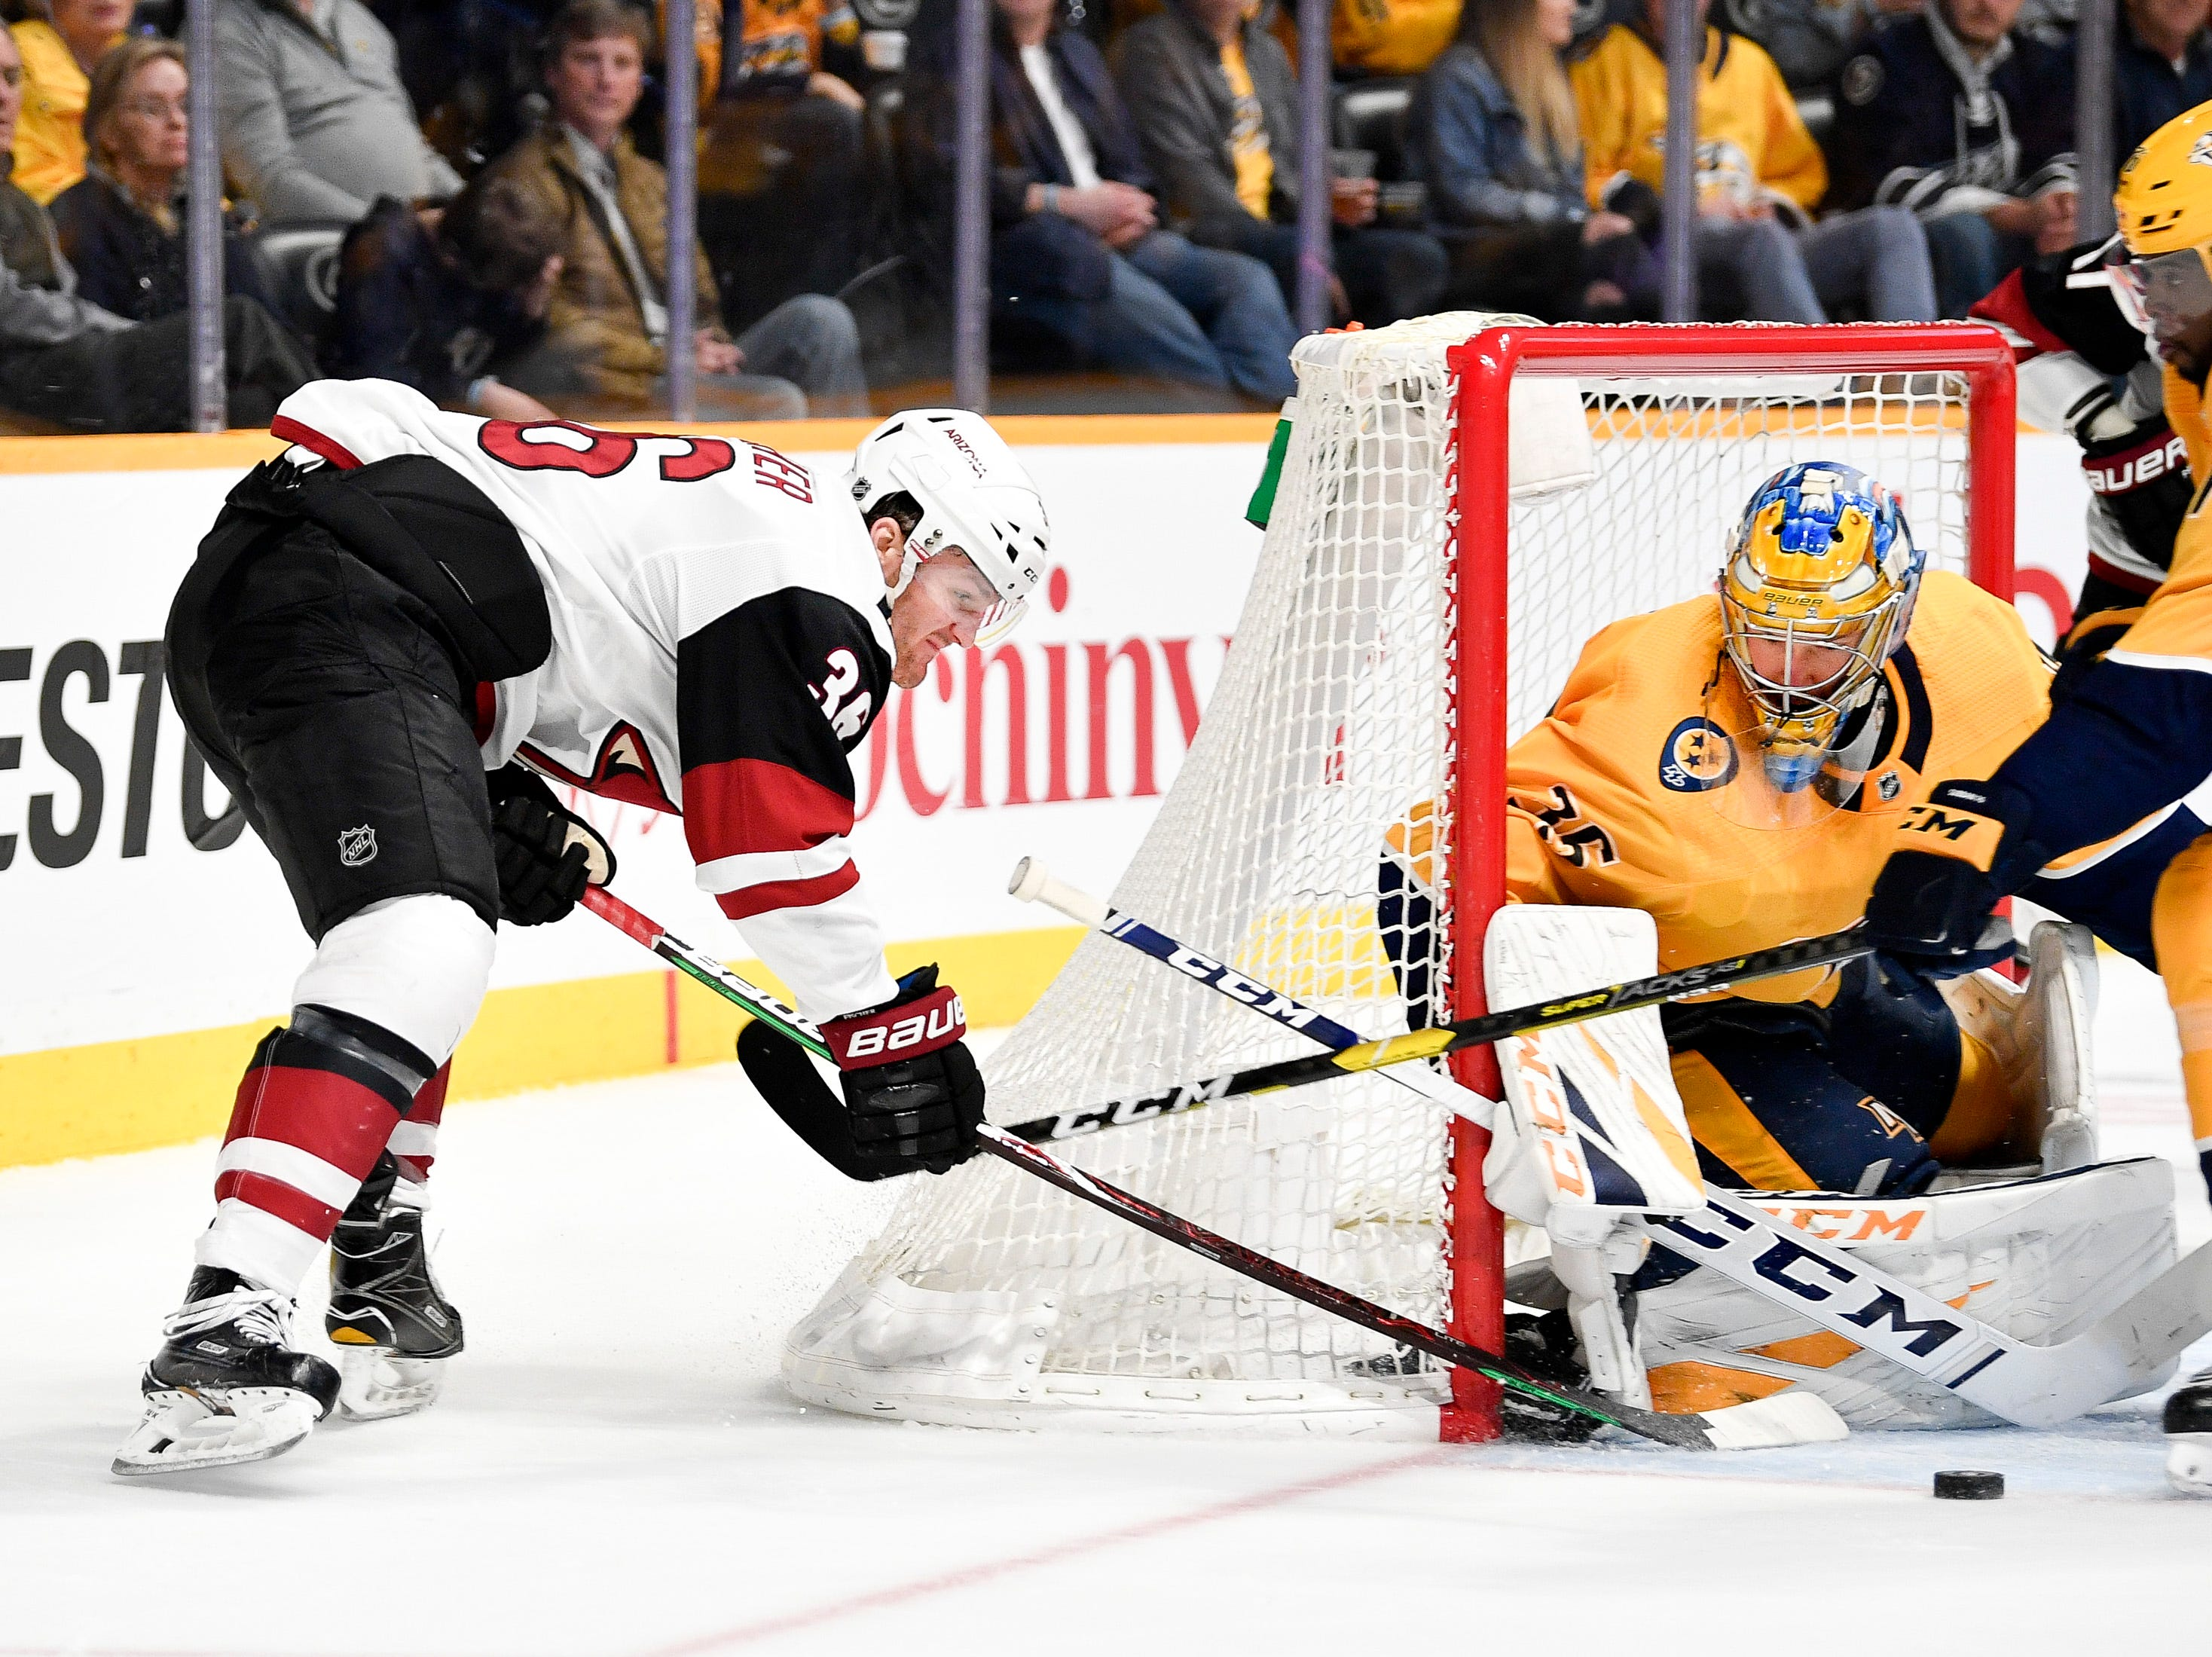 Arizona Coyotes right wing Christian Fischer (36) shoots into Nashville Predators goaltender Pekka Rinne (35) and defenseman P.K. Subban (76) during the second period at Bridgestone Arena in Nashville, Tenn., Tuesday, Feb. 5, 2019.